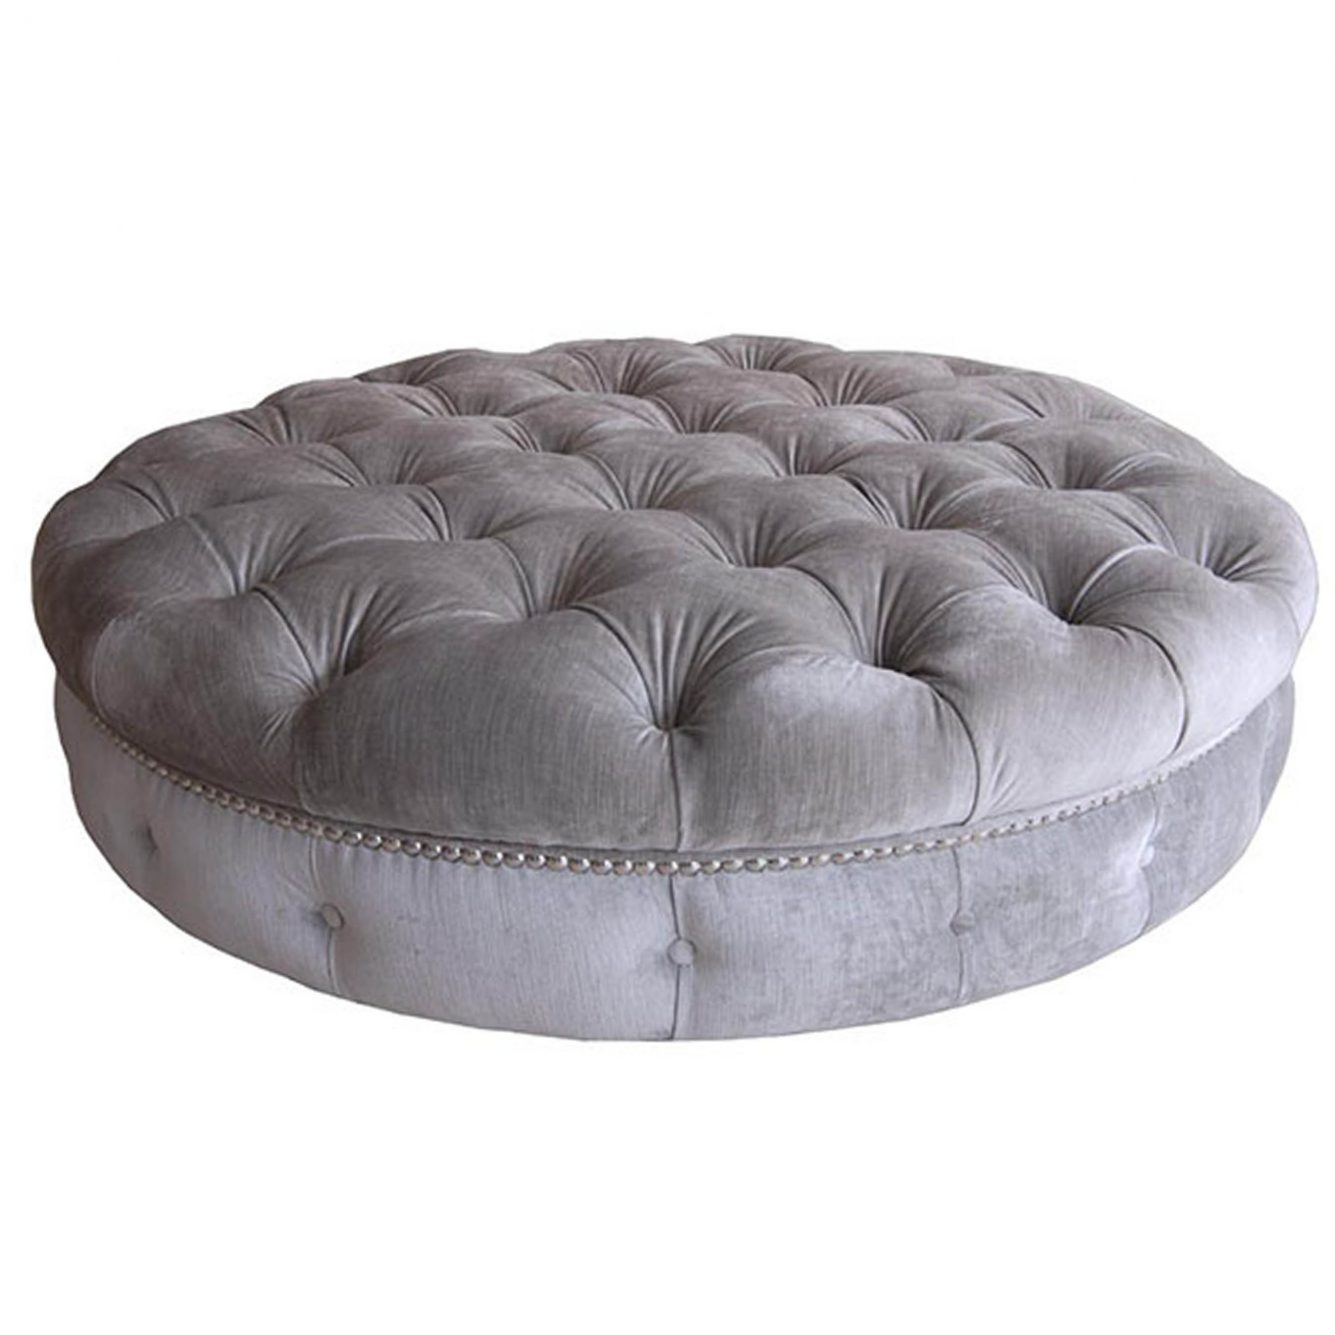 House Haven Ottomans 0005 Jupiter Ottomon